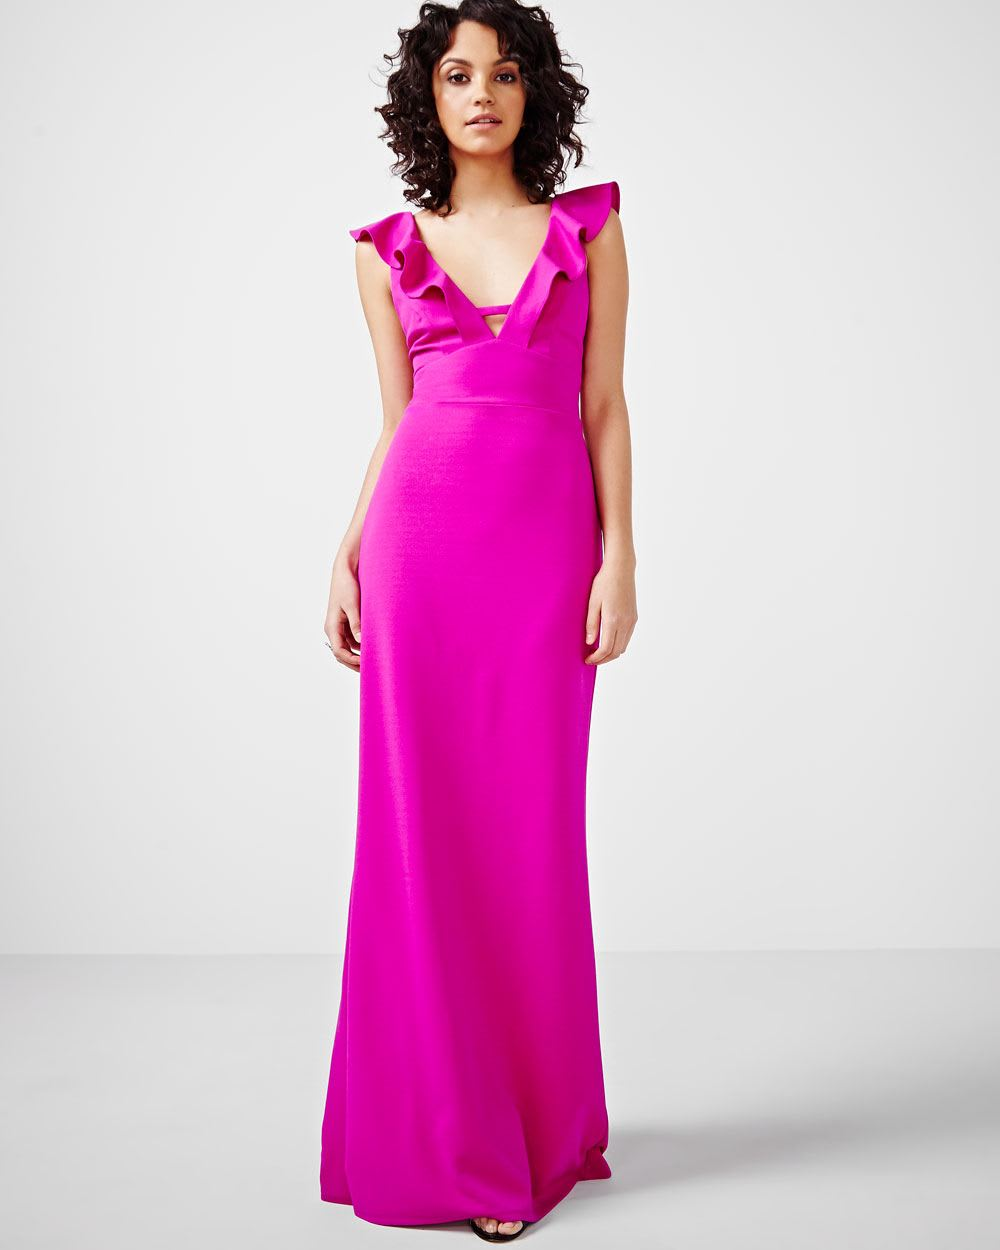 ABS by Allen Schwartz Maxi Dress with Ruffles | RW&CO.